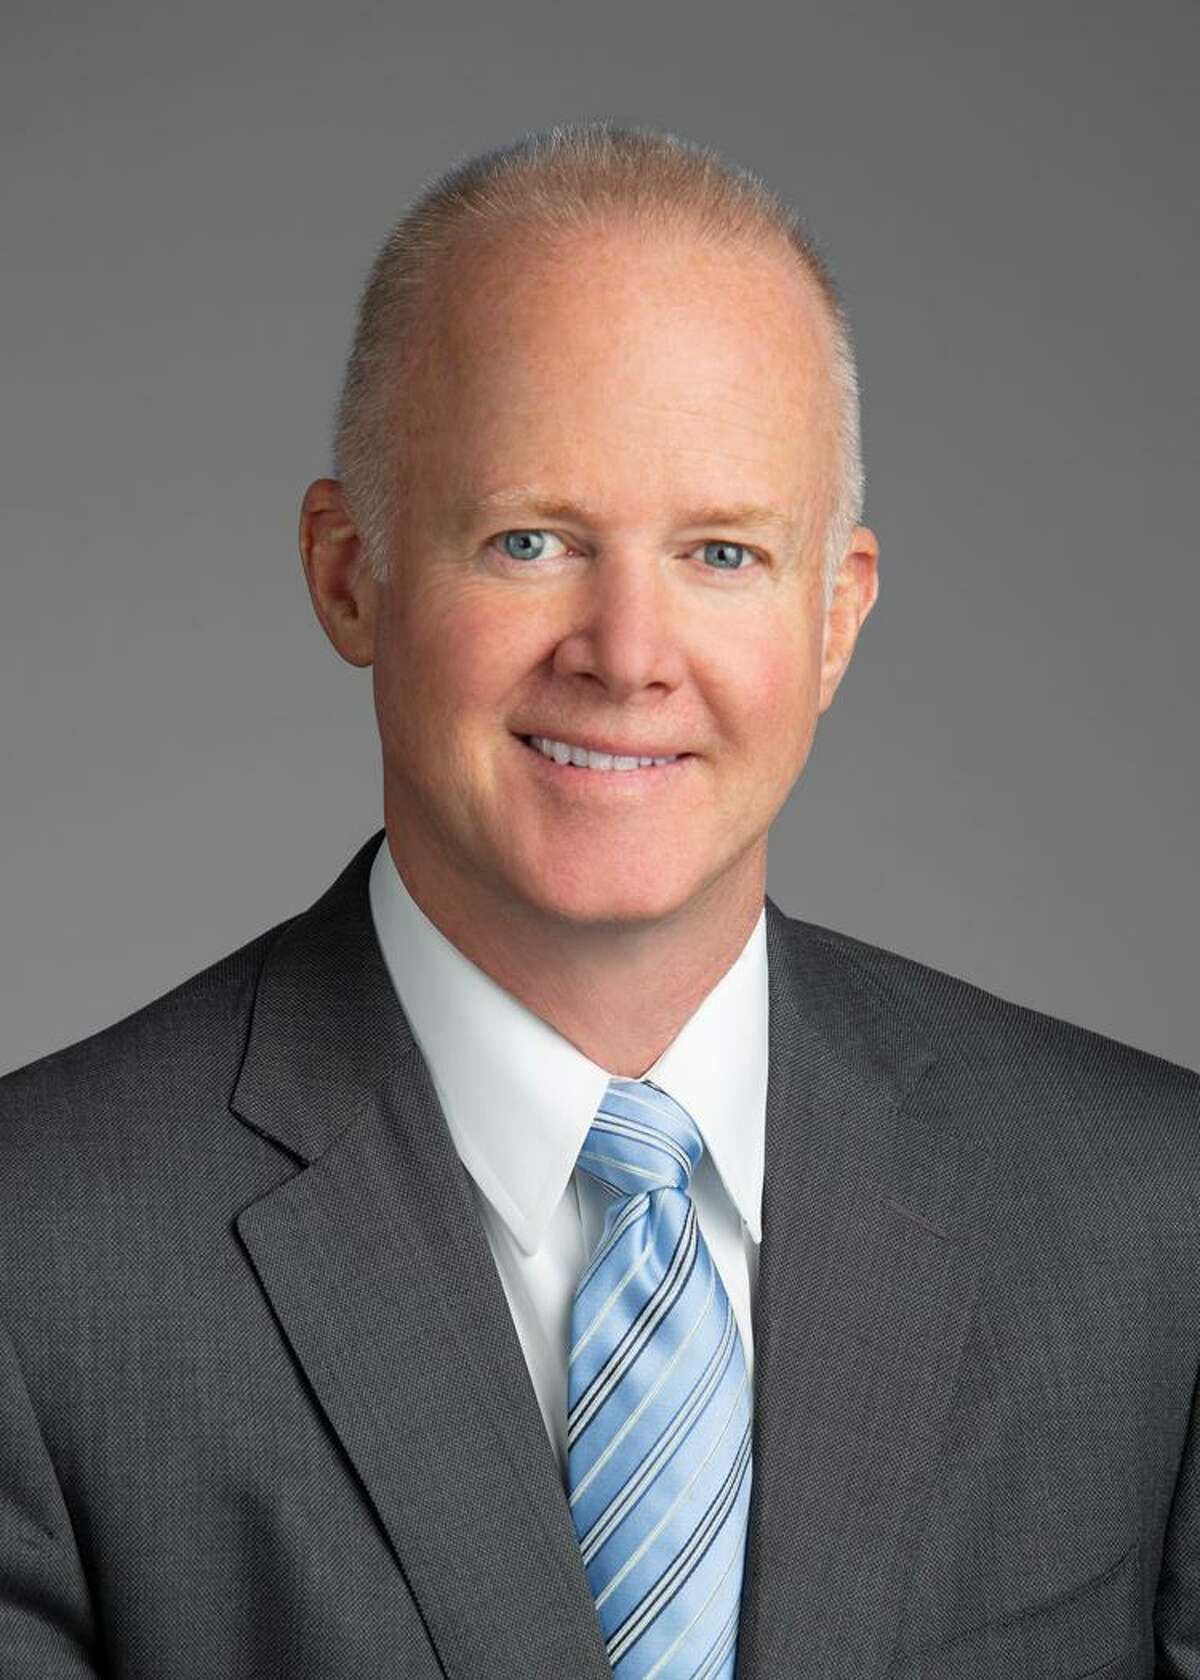 Tim Gregoryhas joined JLL as a senior vice president in itshealth care practice where he will focus on medical office building and ambulatory surgery center leasing.